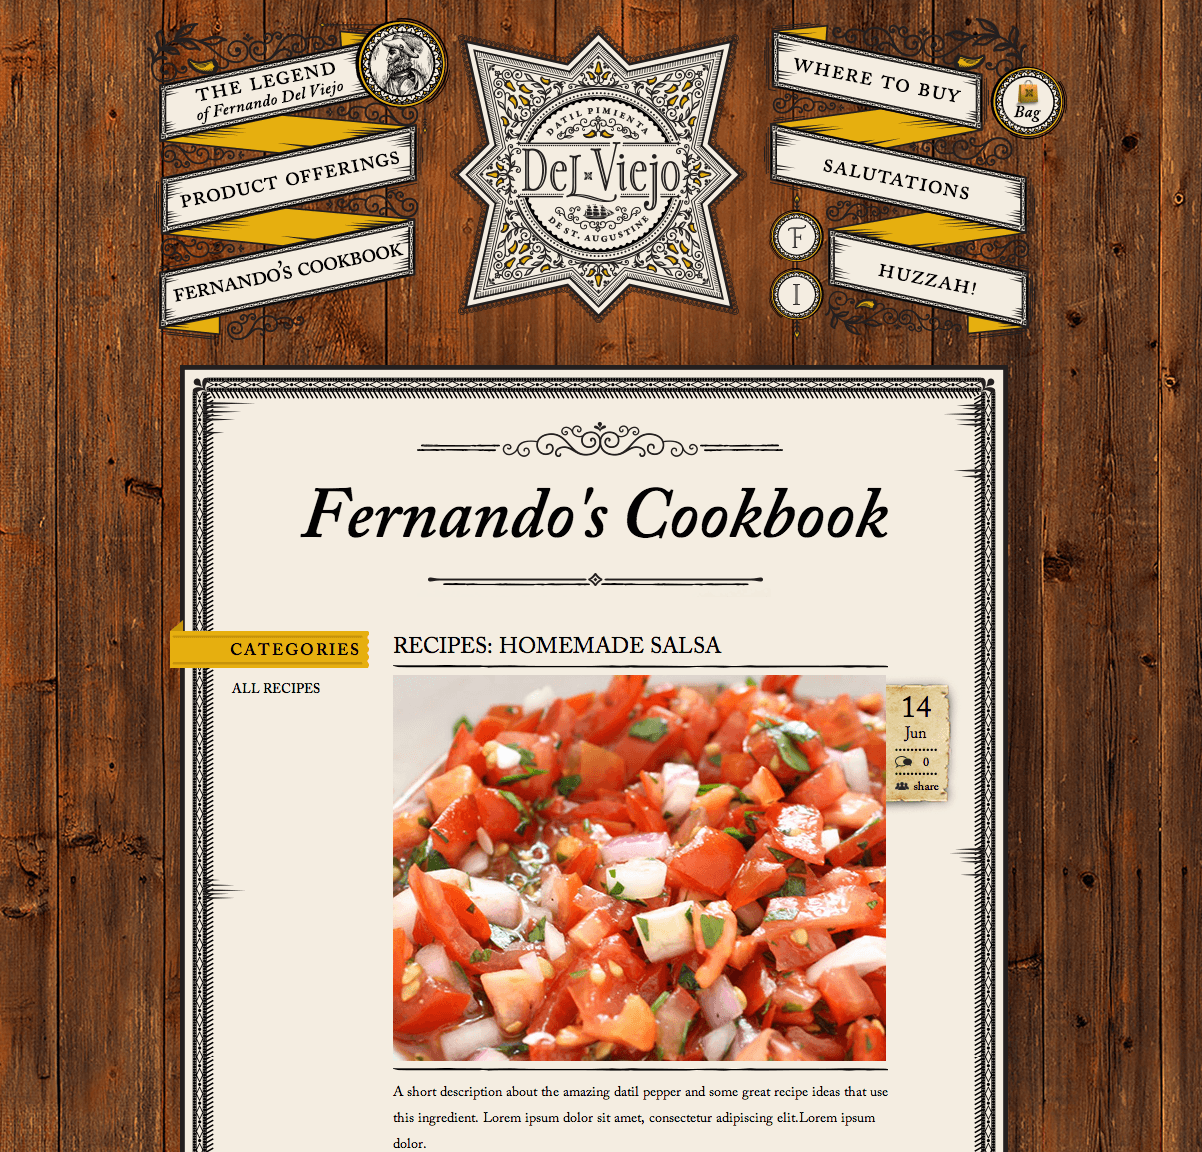 Recipes Section of Del Viejo Website